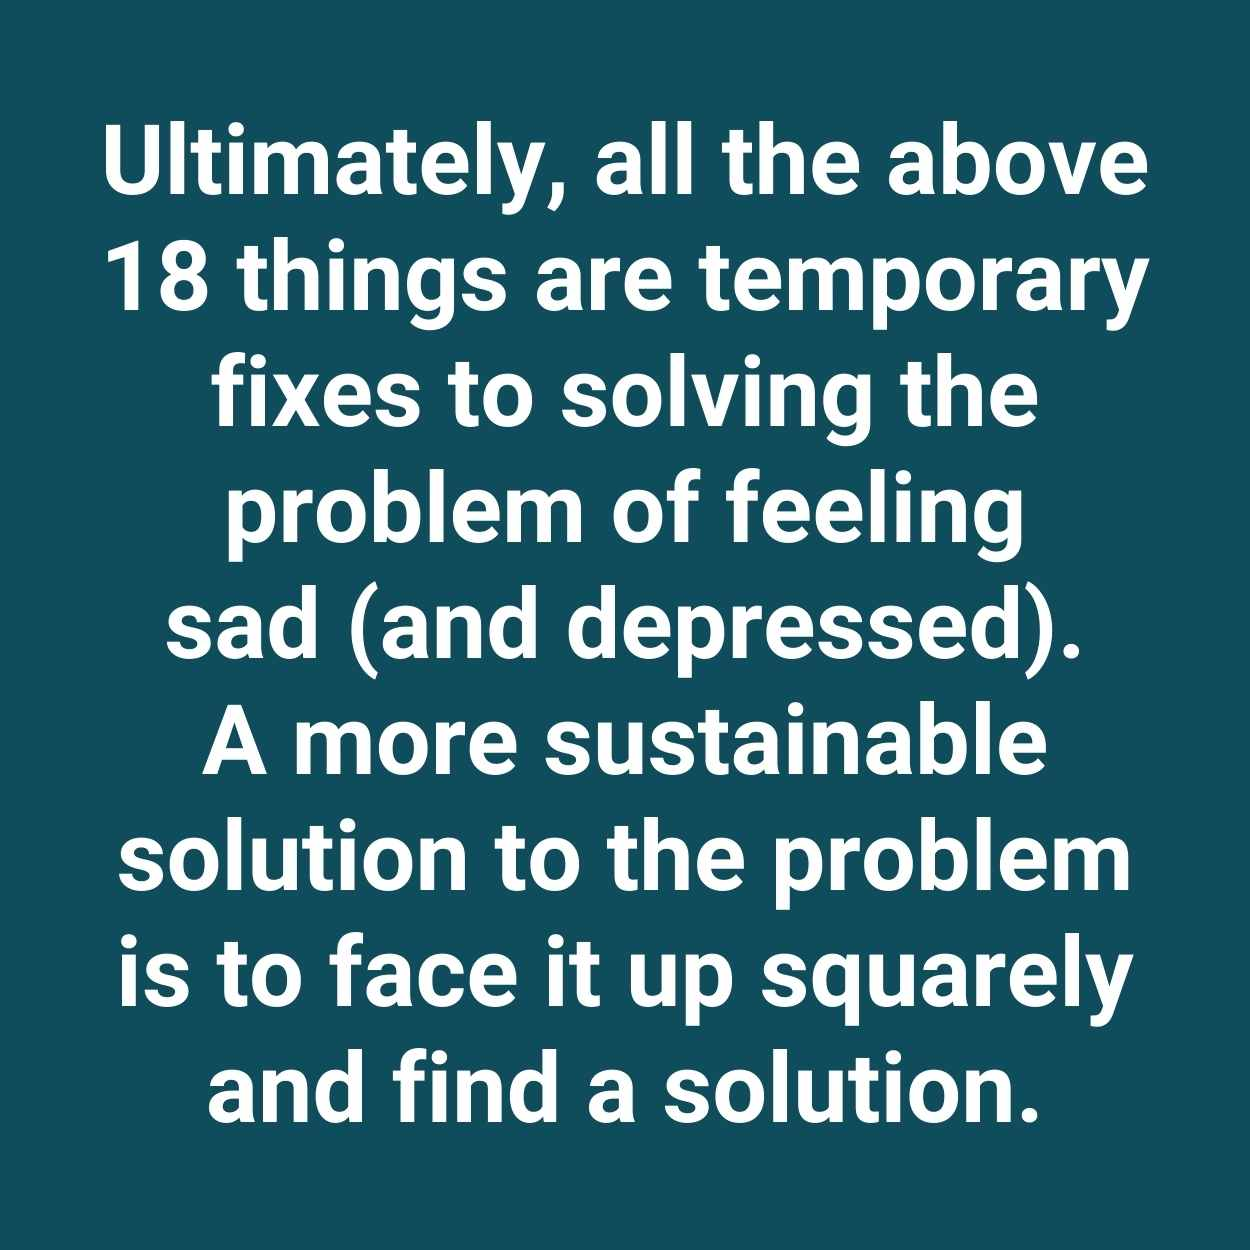 Ultimately, all the above 18 things are temporary fixes to solving the problem of feeling sad (and depressed). A more sustainable solution to the problem is to face it up squarely and find a solution.